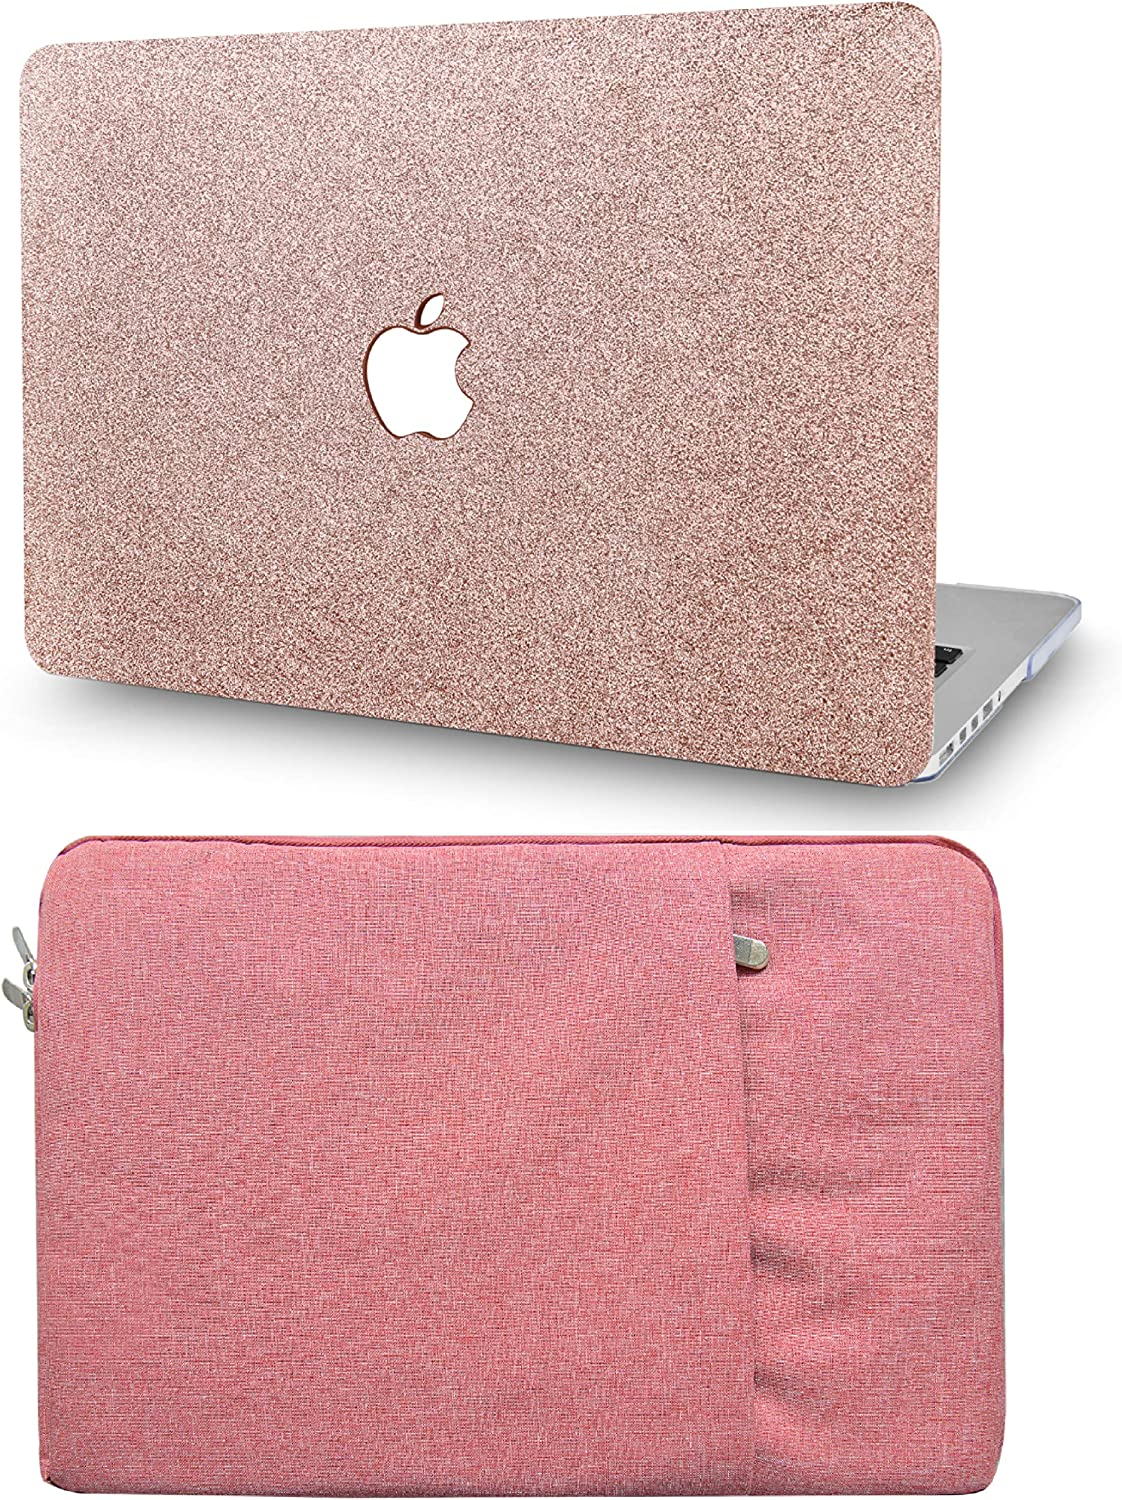 """KECC Laptop Case for MacBook Pro 13"""" (2020/2019/2018/2017/2016) with Sleeve Plastic Hard Shell A2289/A2251/A2159/A1989/A1706/A1708 Touch Bar 2 in 1 Bundle (Rose Gold Sparkling)"""